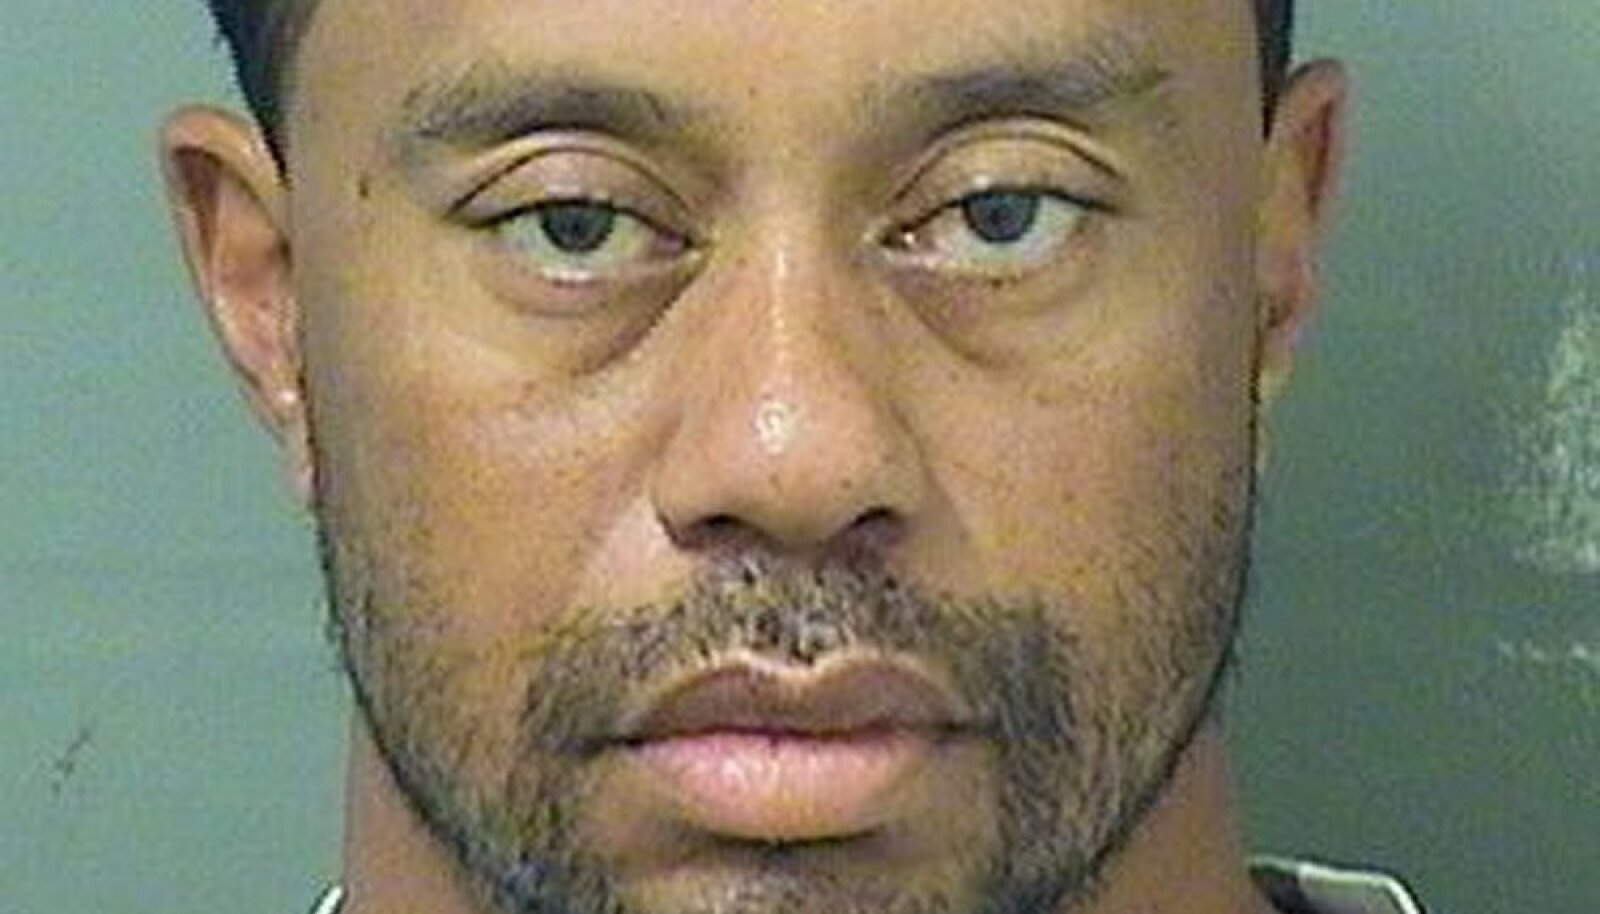 FILE PHOTO: Woods appears in a booking photo released by Palm Beach County Sheriff's Office in Palm Beach